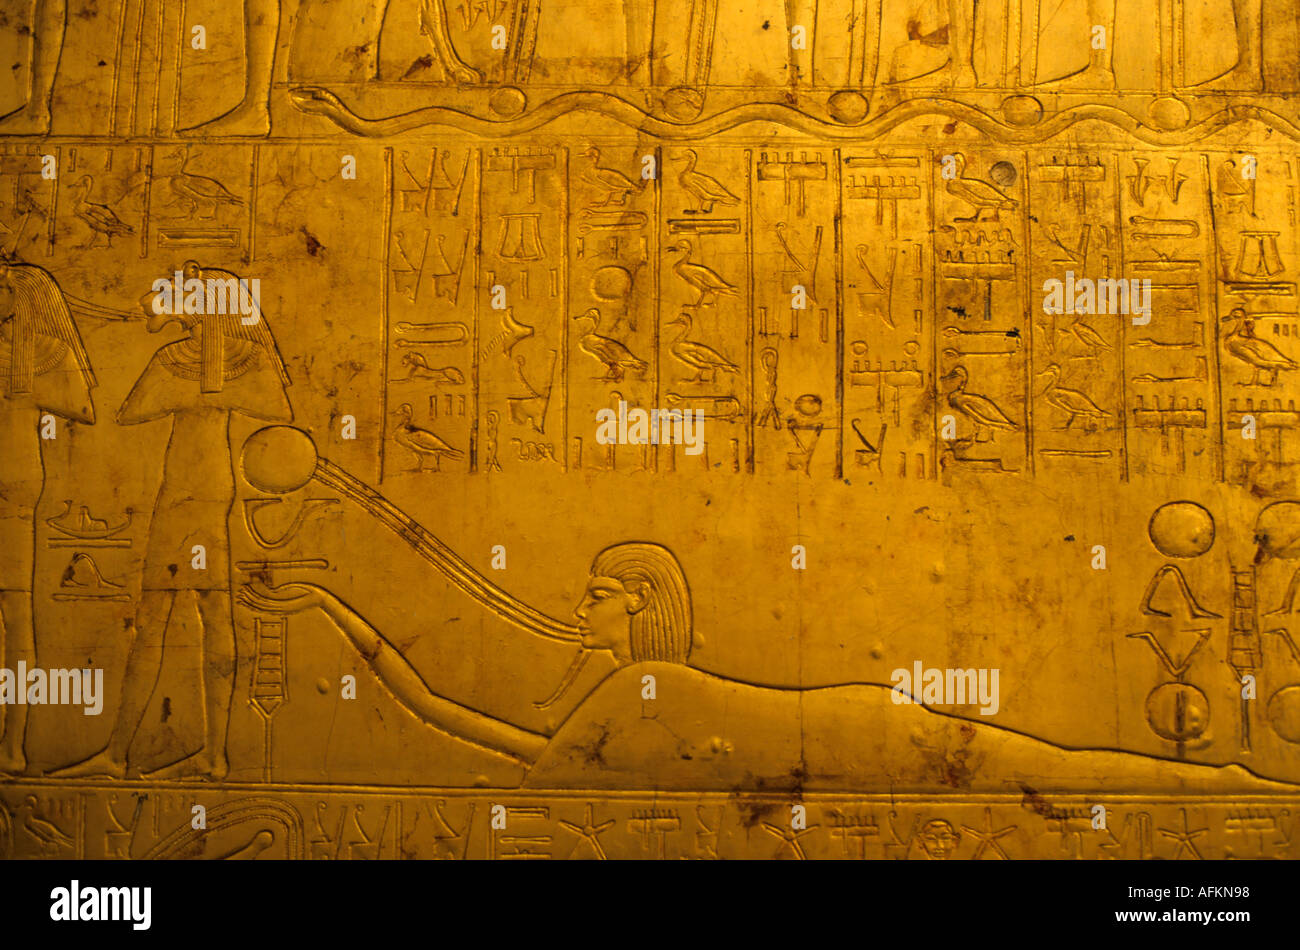 Hieroglyphics on Tutankhamun's gold tomb at the Egyptian Museum in Cairo, Egypt. - Stock Image